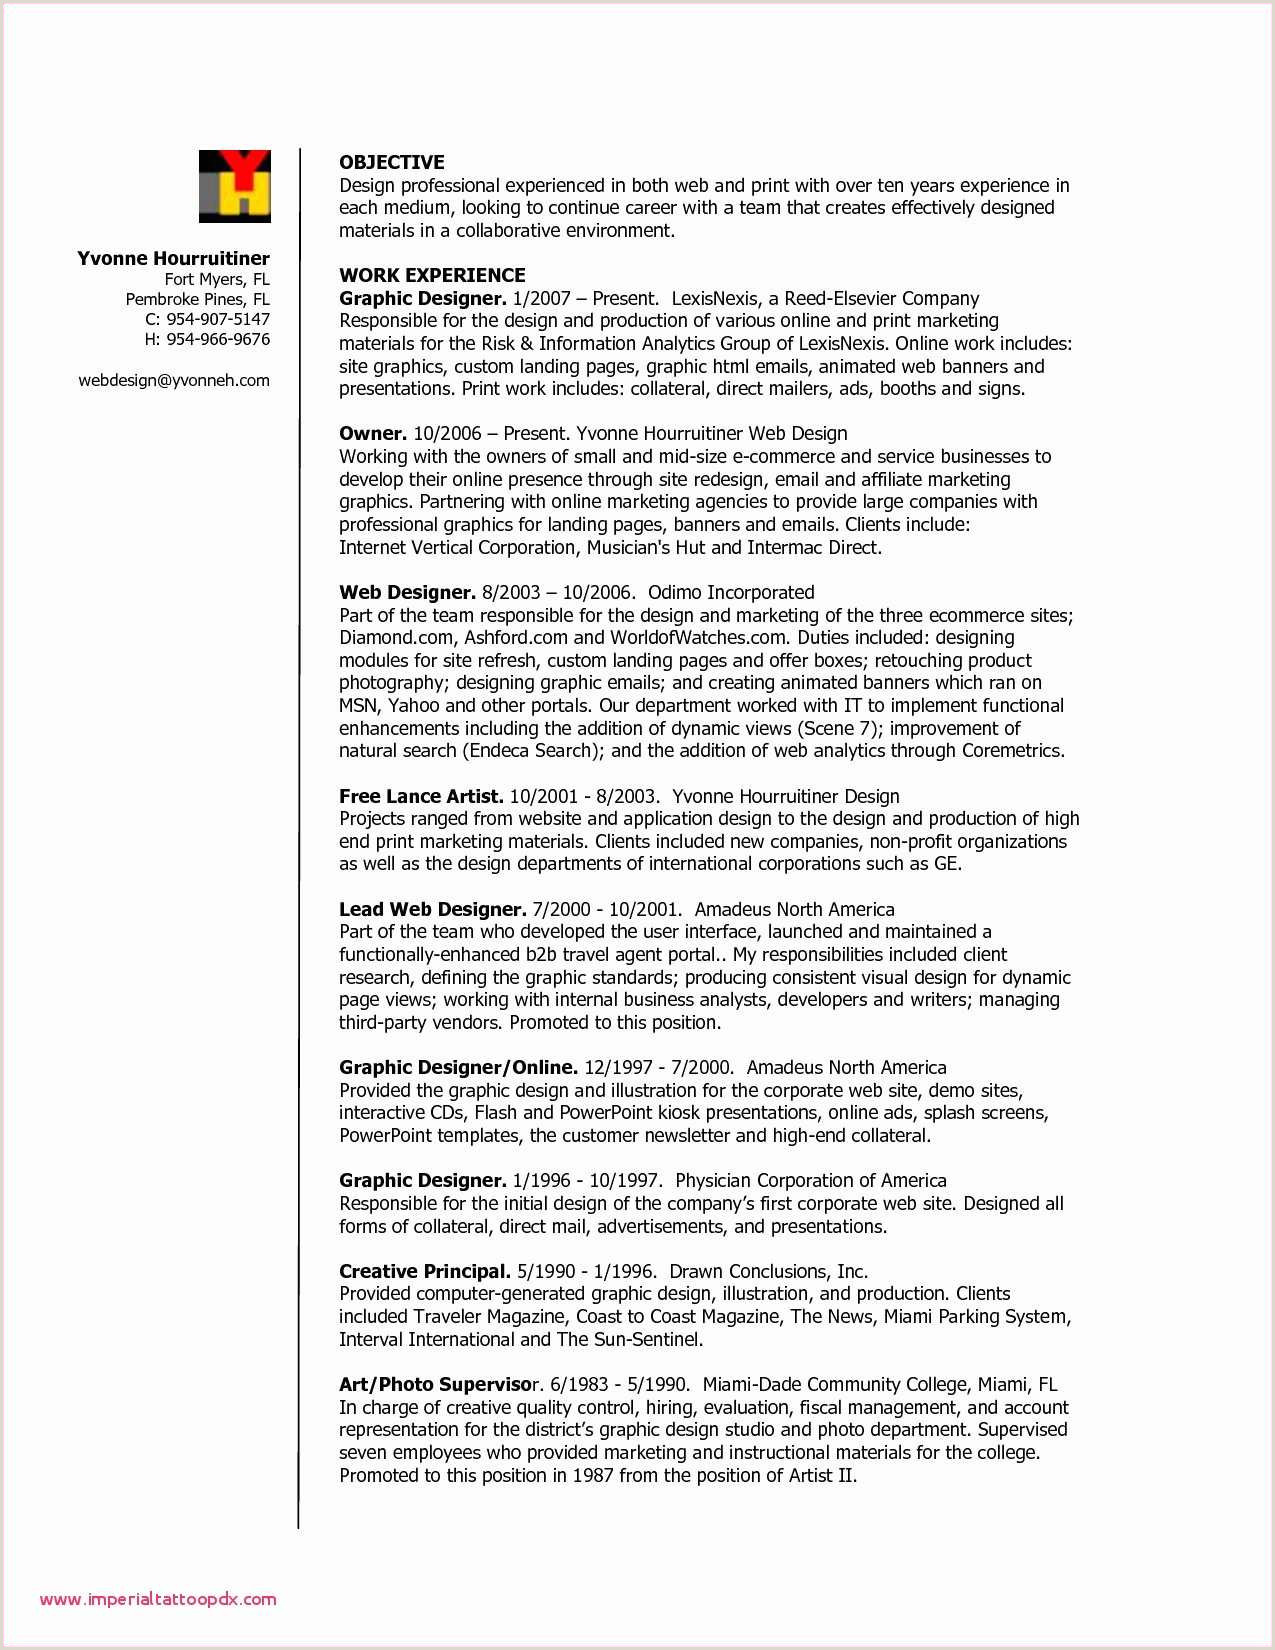 Creative Writer Resume Best Resume Panies Professional Resume Builders for Hire